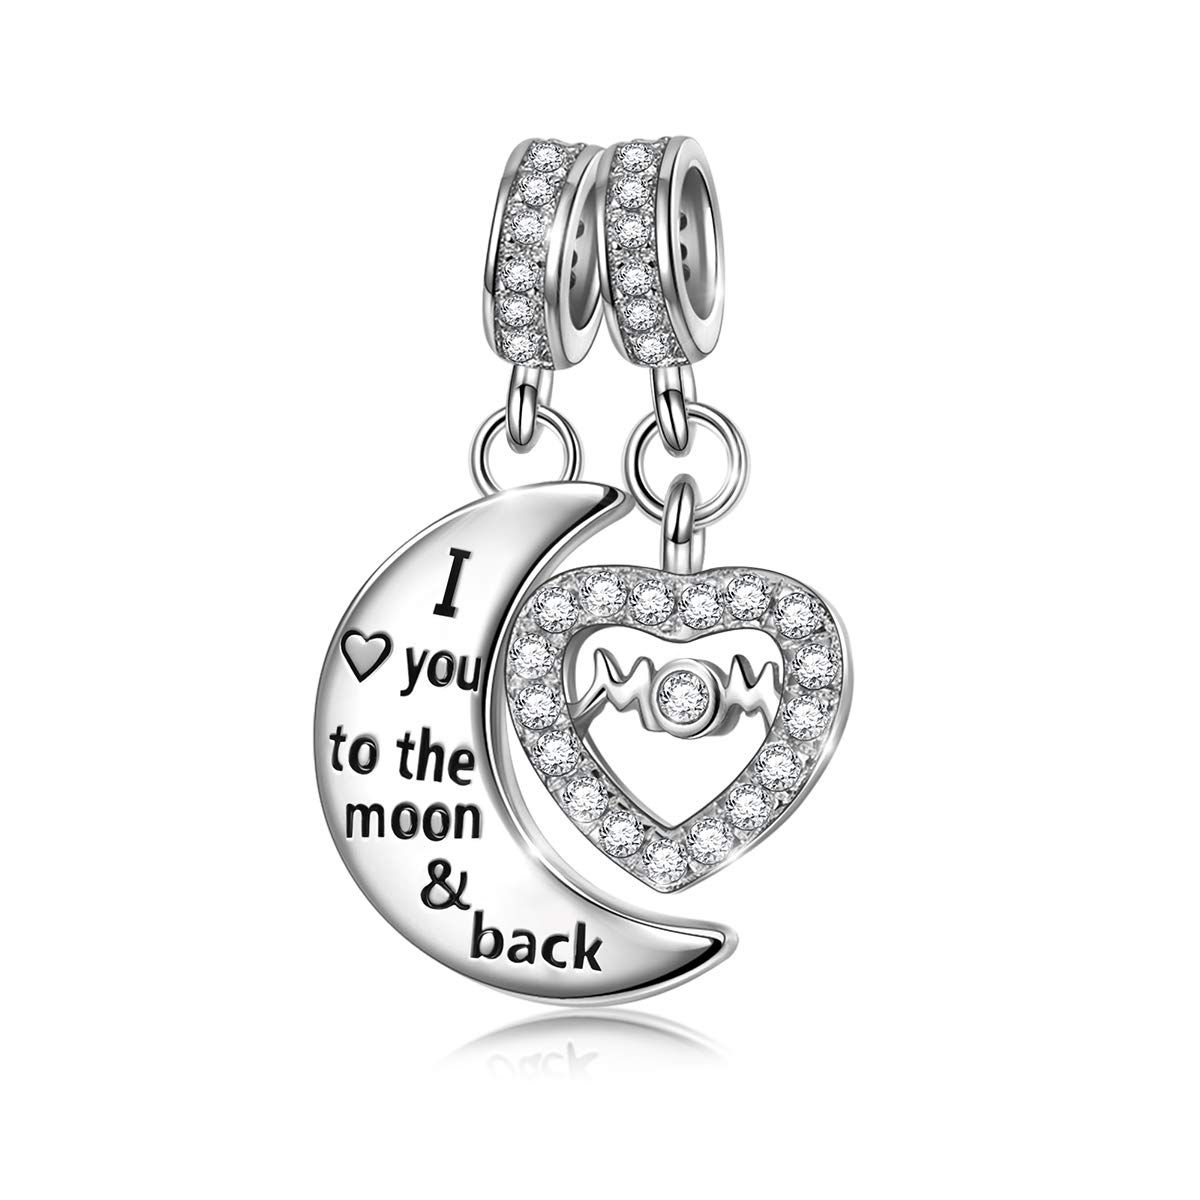 4eda82624 Amazon.com: NINAQUEEN I Love You to The Moon and Back 925 Sterling Silver  Dangle Charm Beads fit Pandöra Bracelet Necklace Jewelry Birthday  Anniversary ...